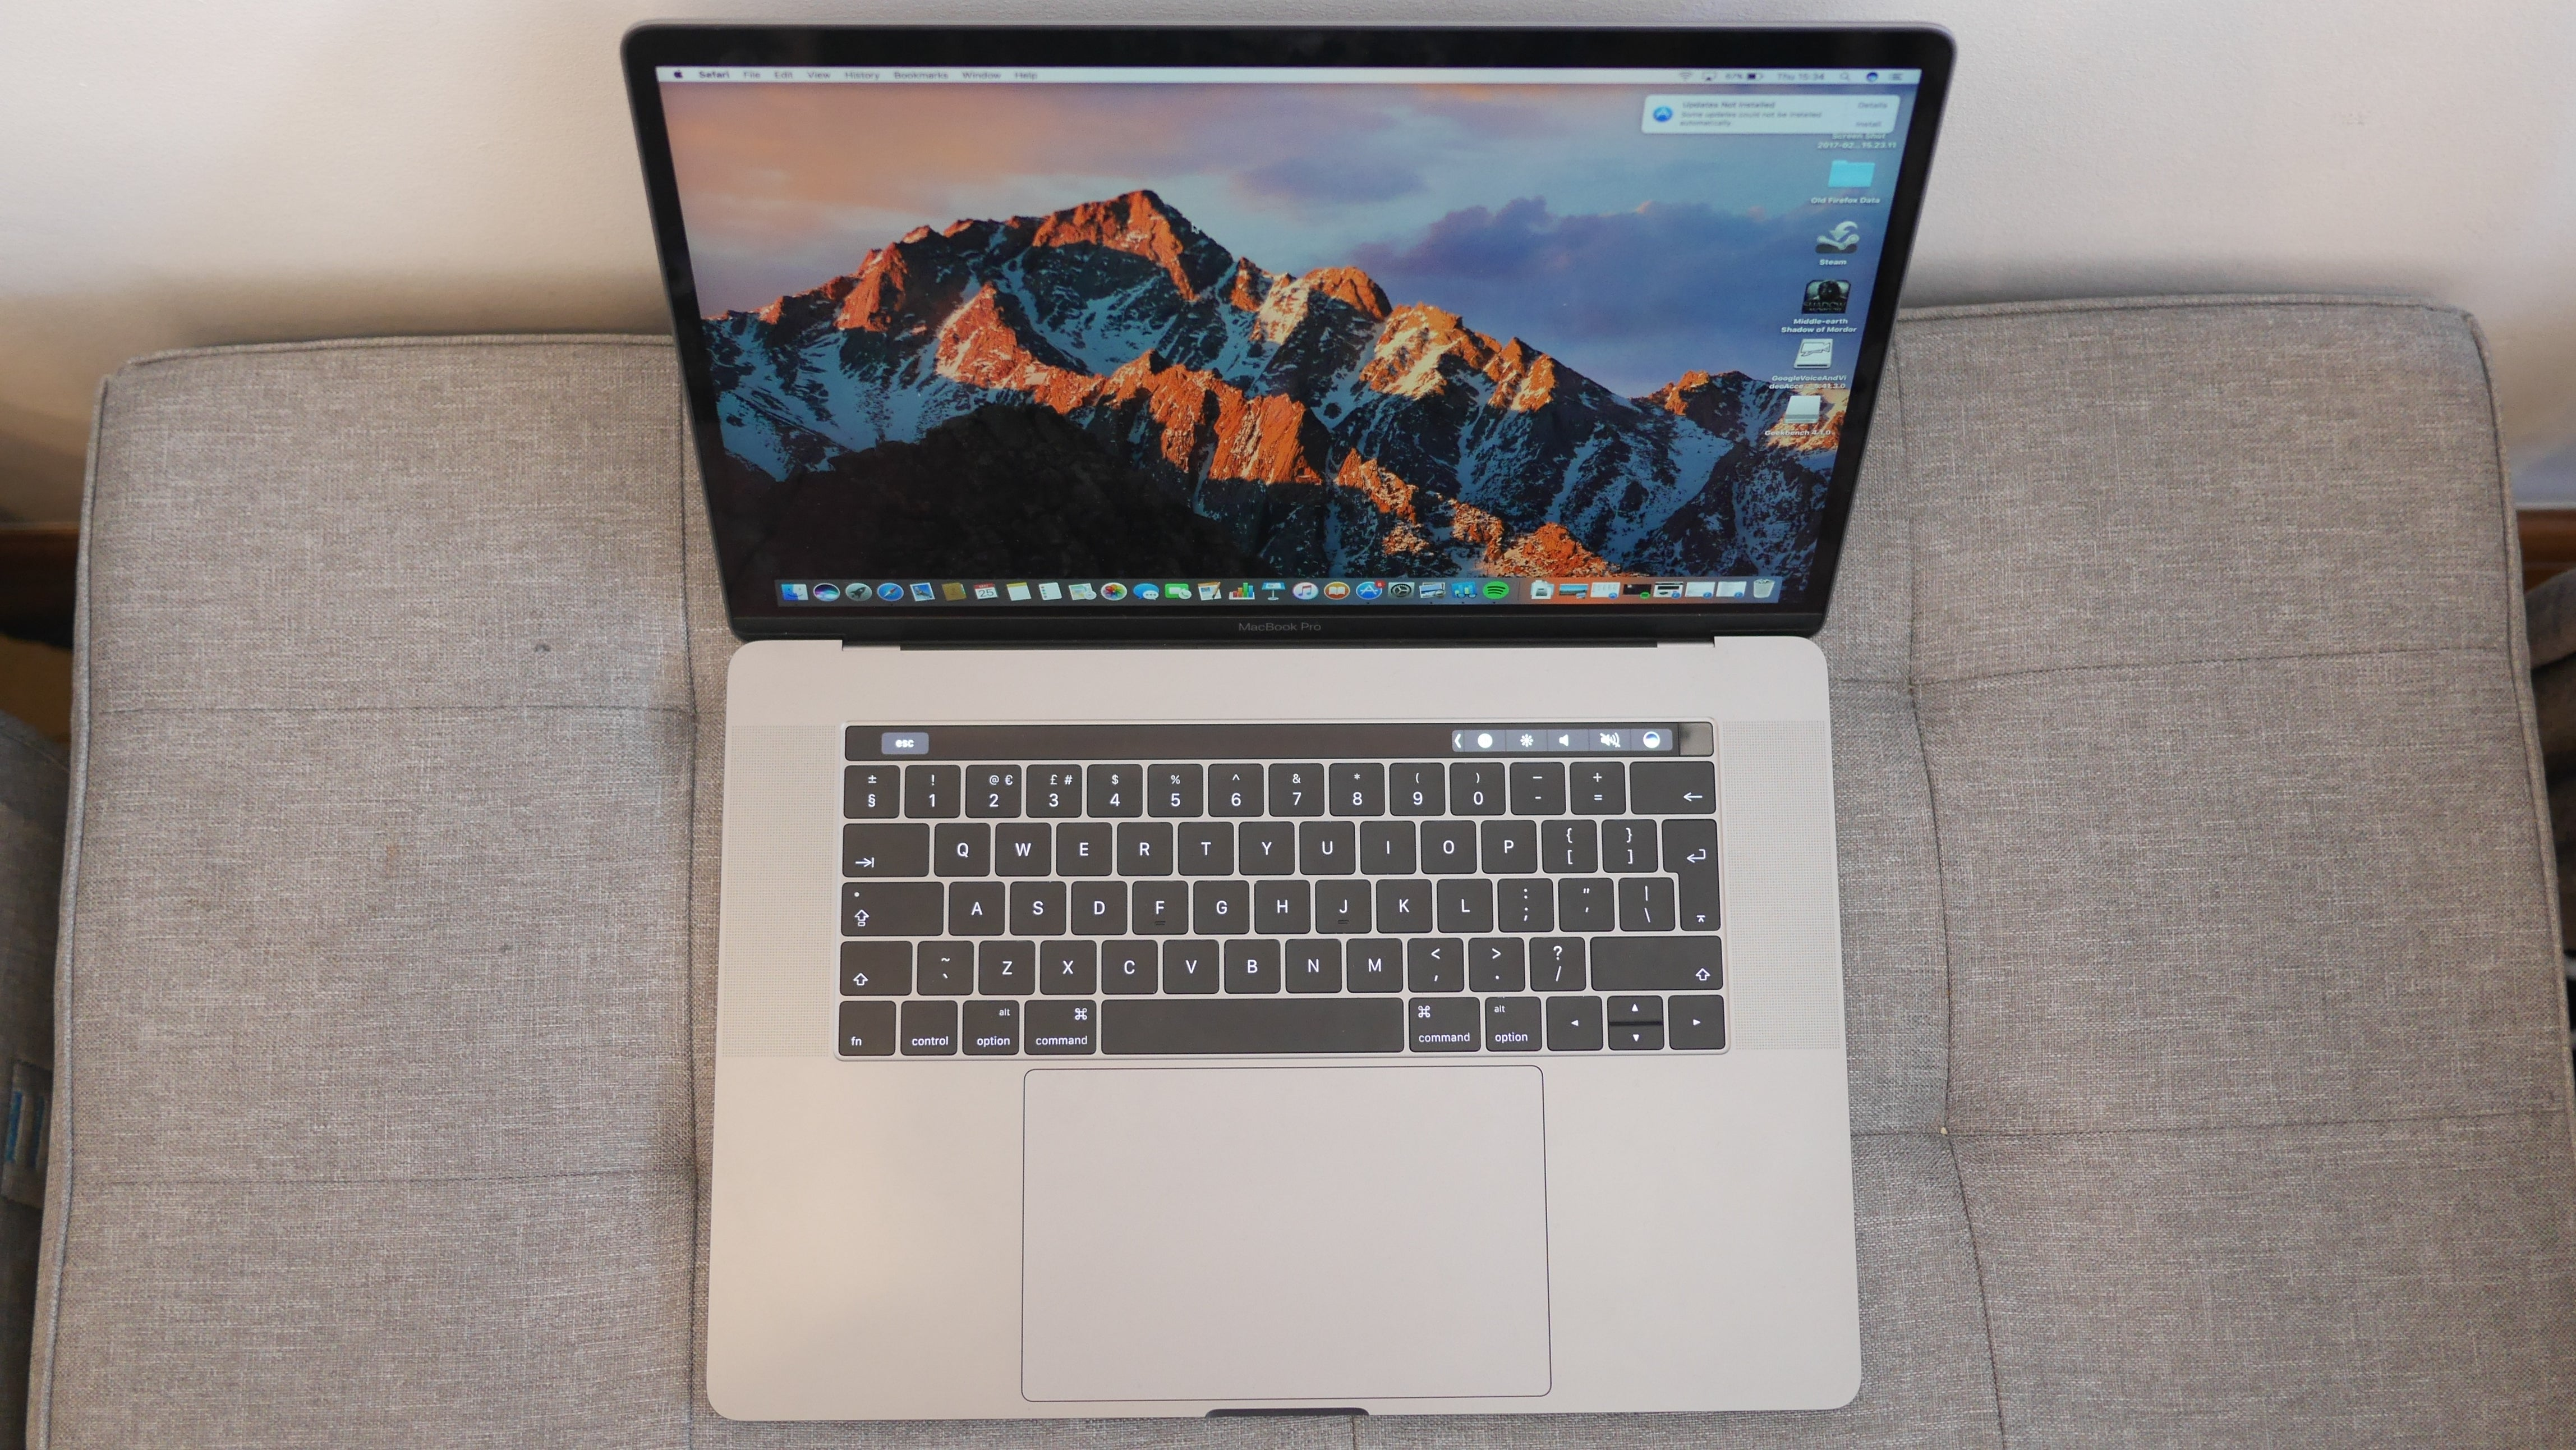 Macbook Pro 15 Inch 2016 Review Trusted Reviews